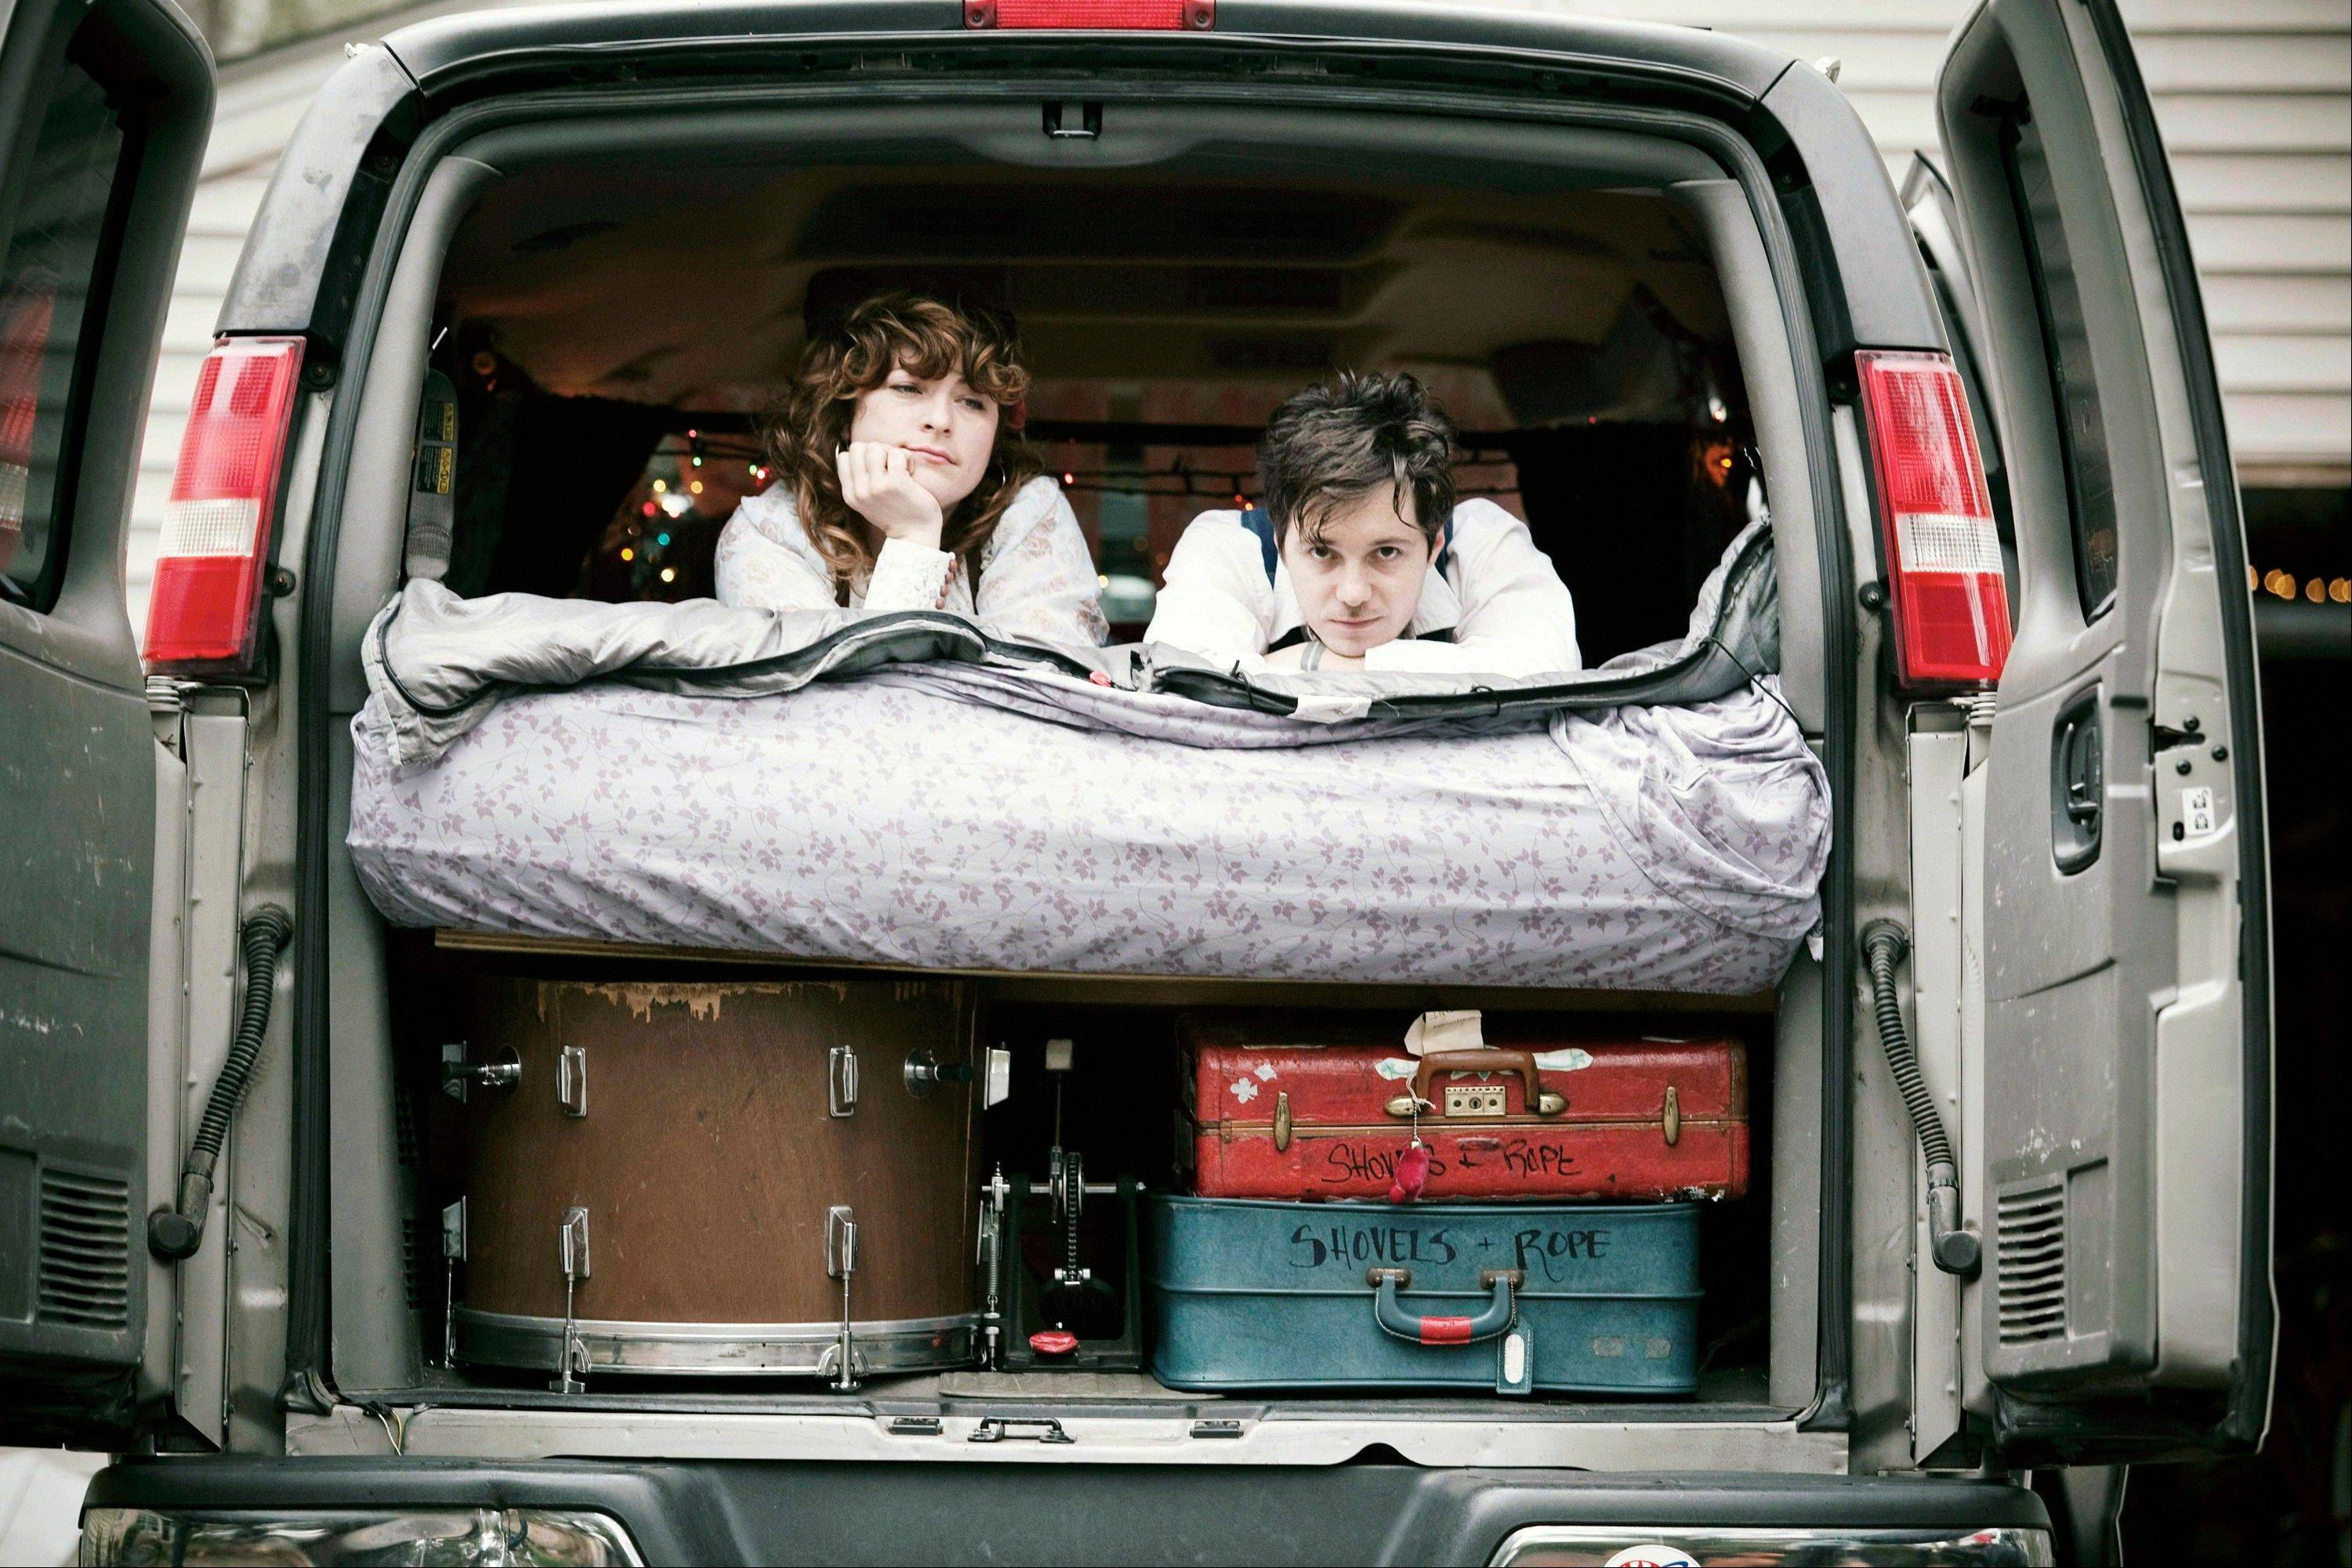 Michael Trent, right, and Cary Ann Hearst from the band Shovels & Rope.